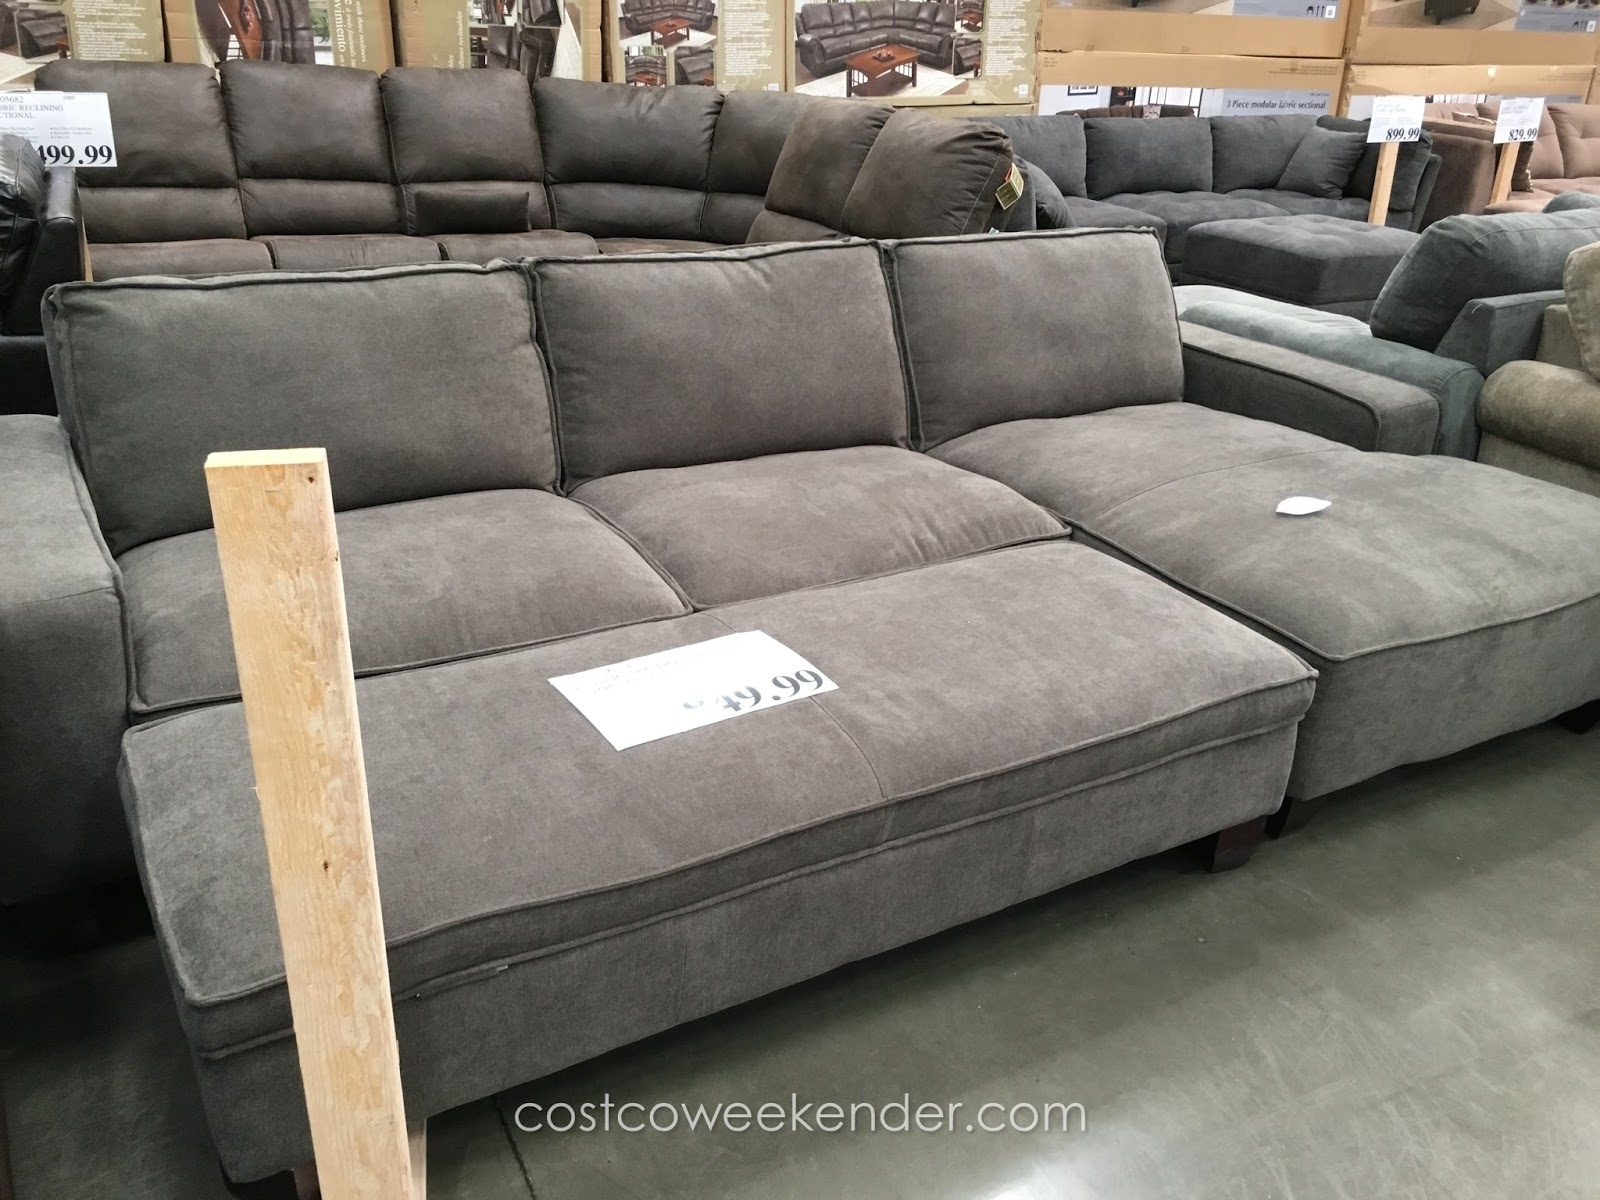 Sectional Sofa Design: Costco Sectional Sofas Best Ever Leather with regard to Sectional Sofas With Storage (Image 6 of 10)